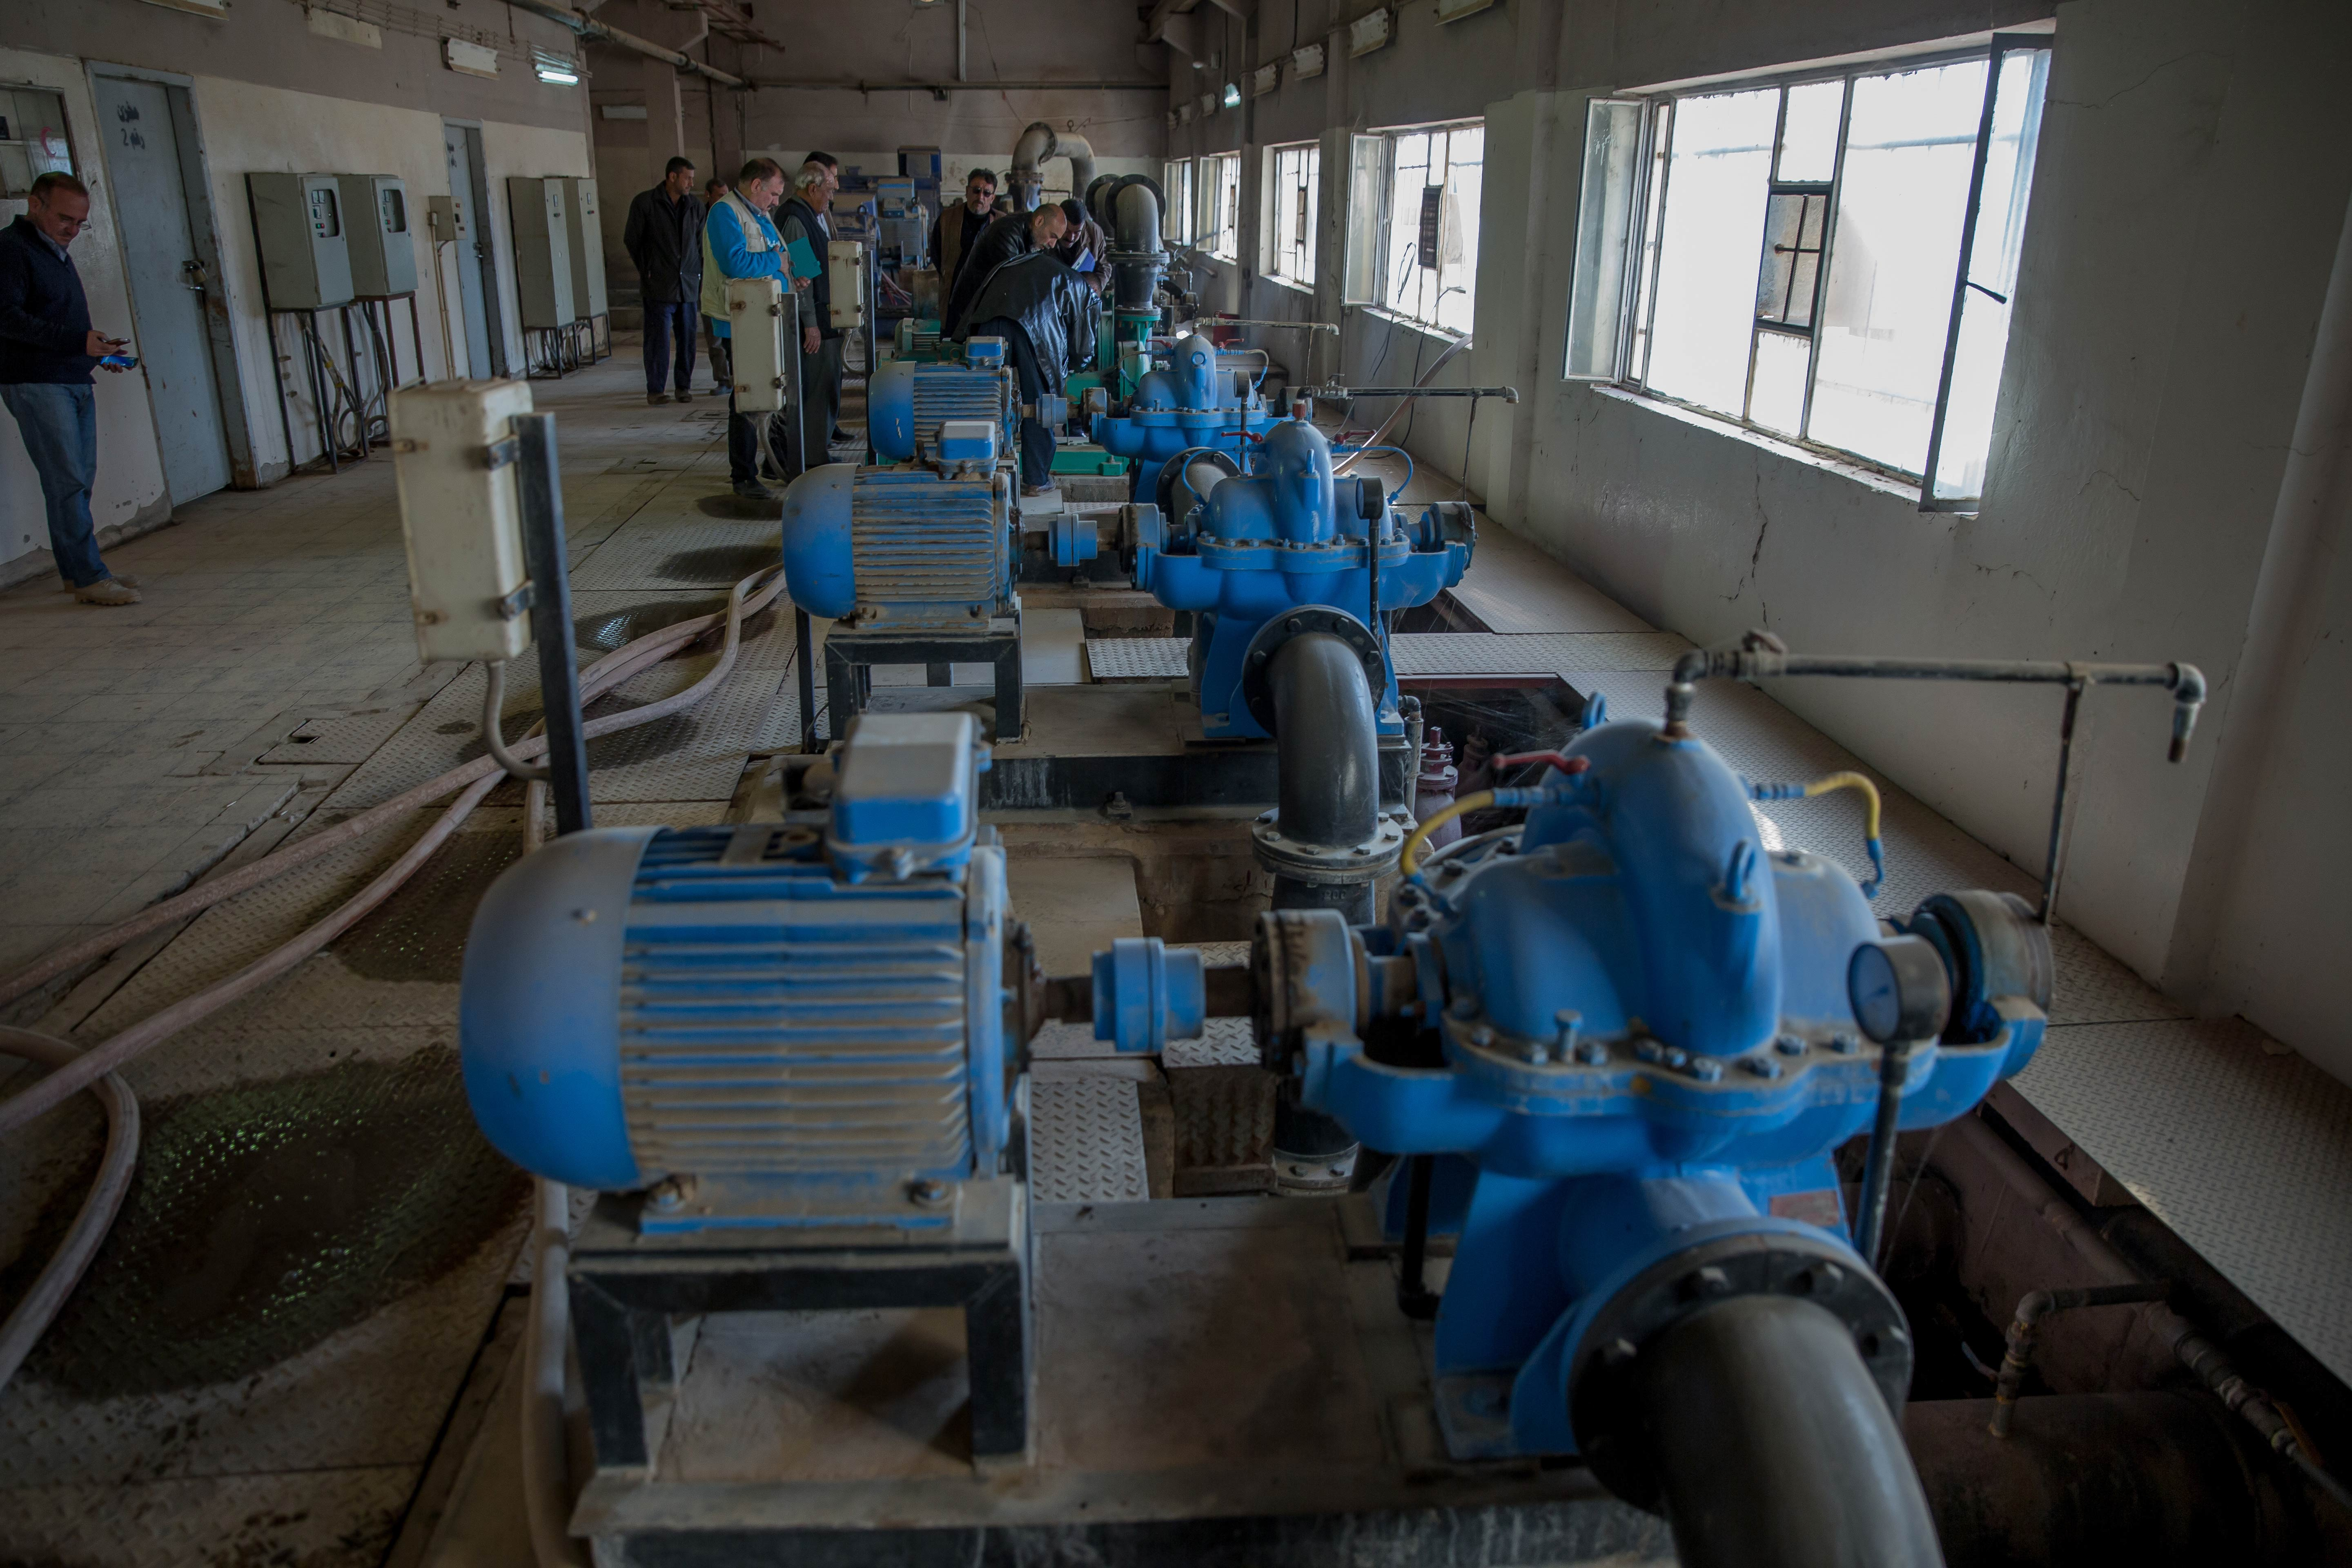 People stand around machinery in a room